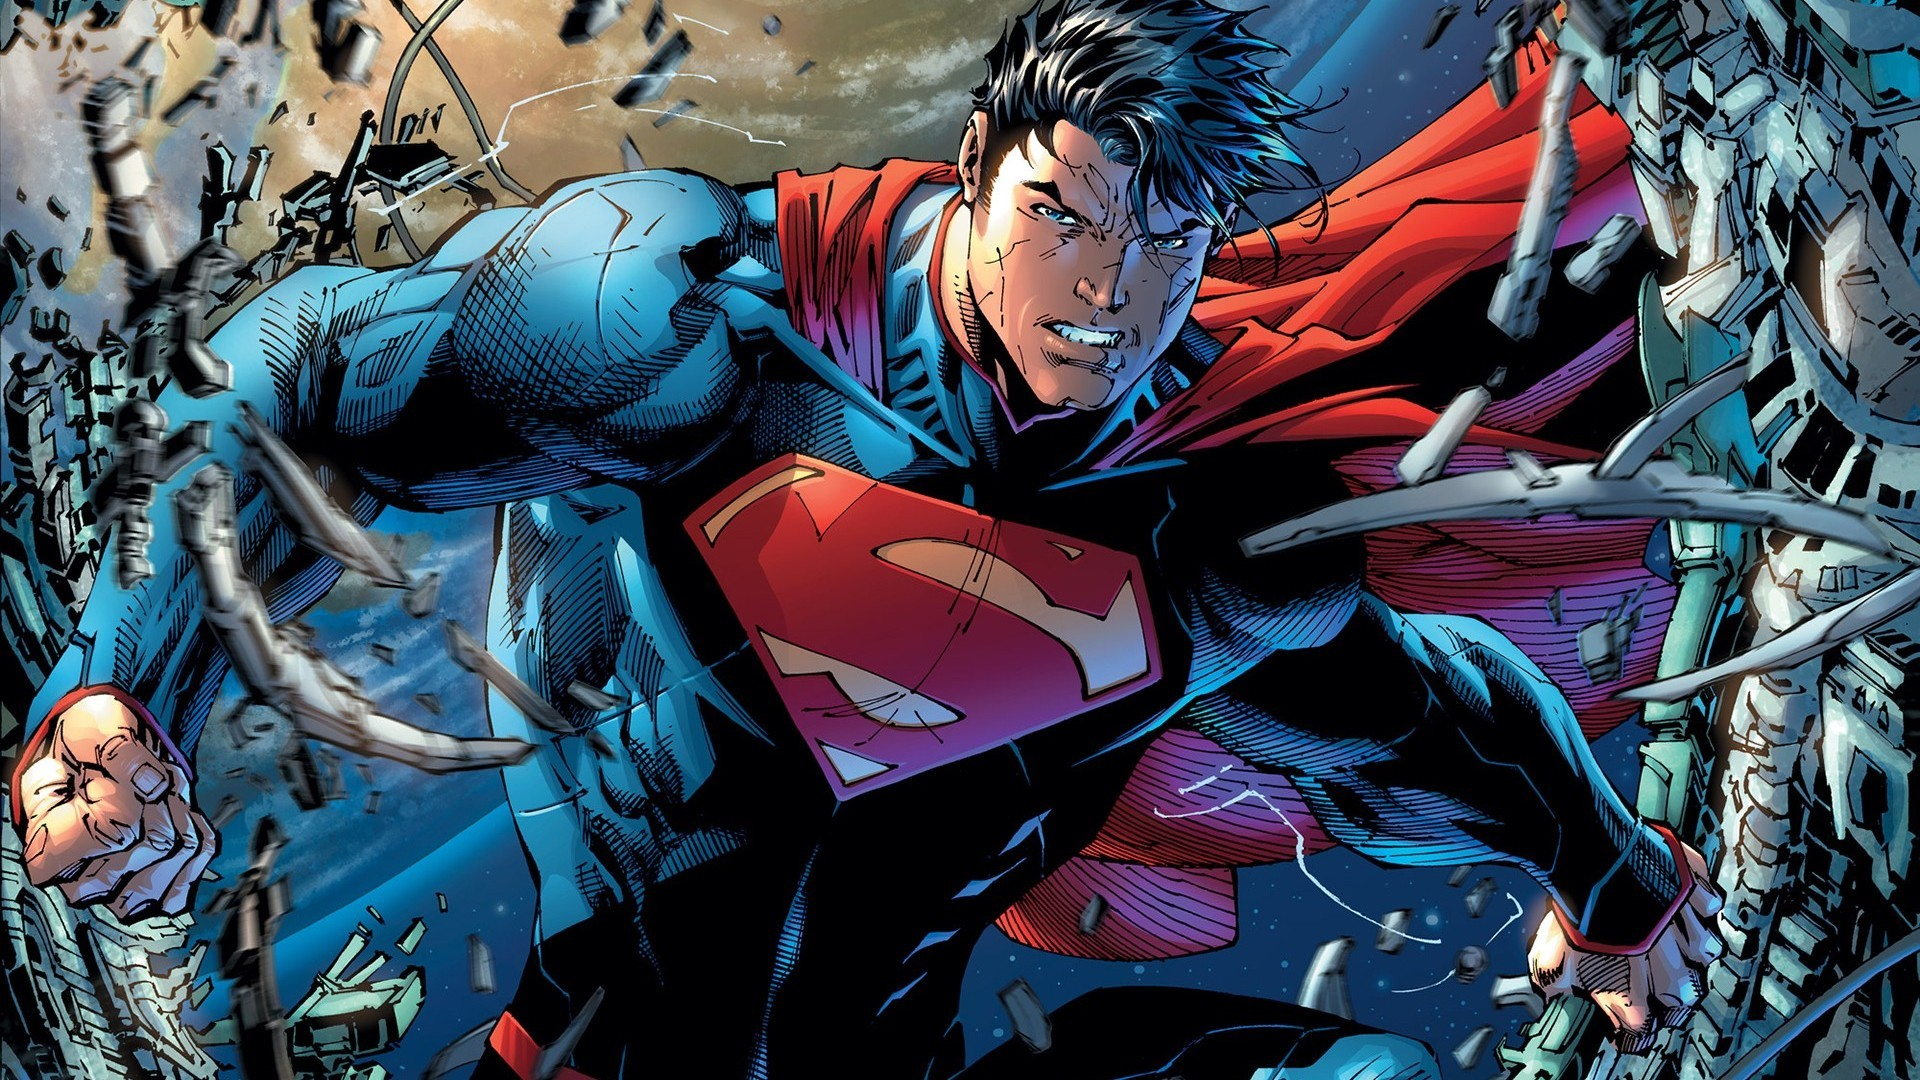 1920x1080 DC Comics Superman Man Of Steel The New 52 Superman Unchained wallpaper  background